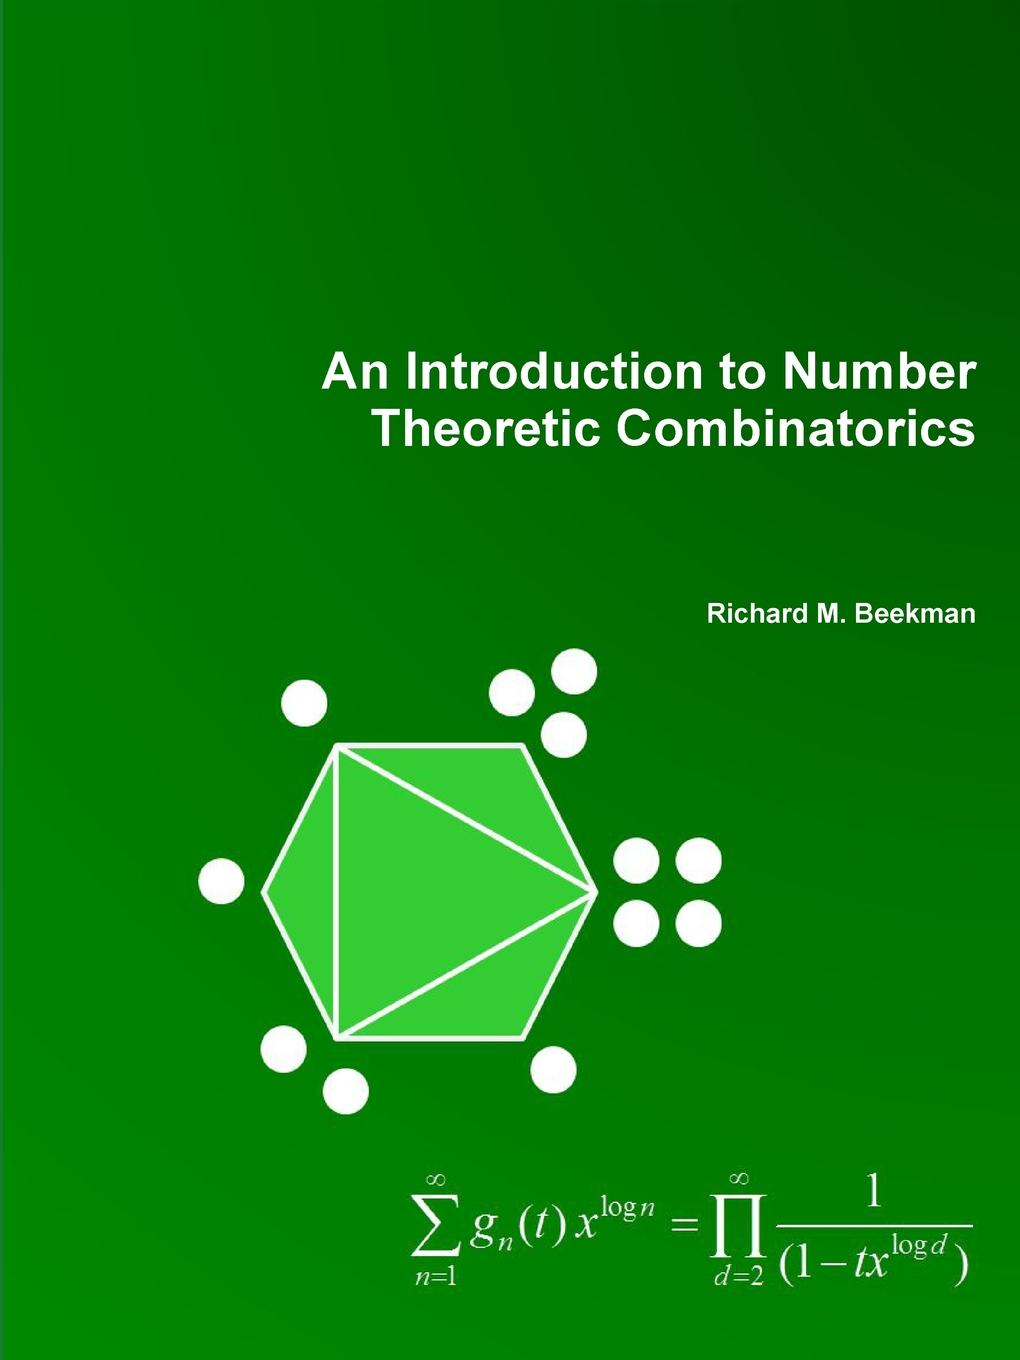 Richard M. Beekman An Introduction to Number Theoretic Combinatorics lois rudnick p american identities an introductory textbook